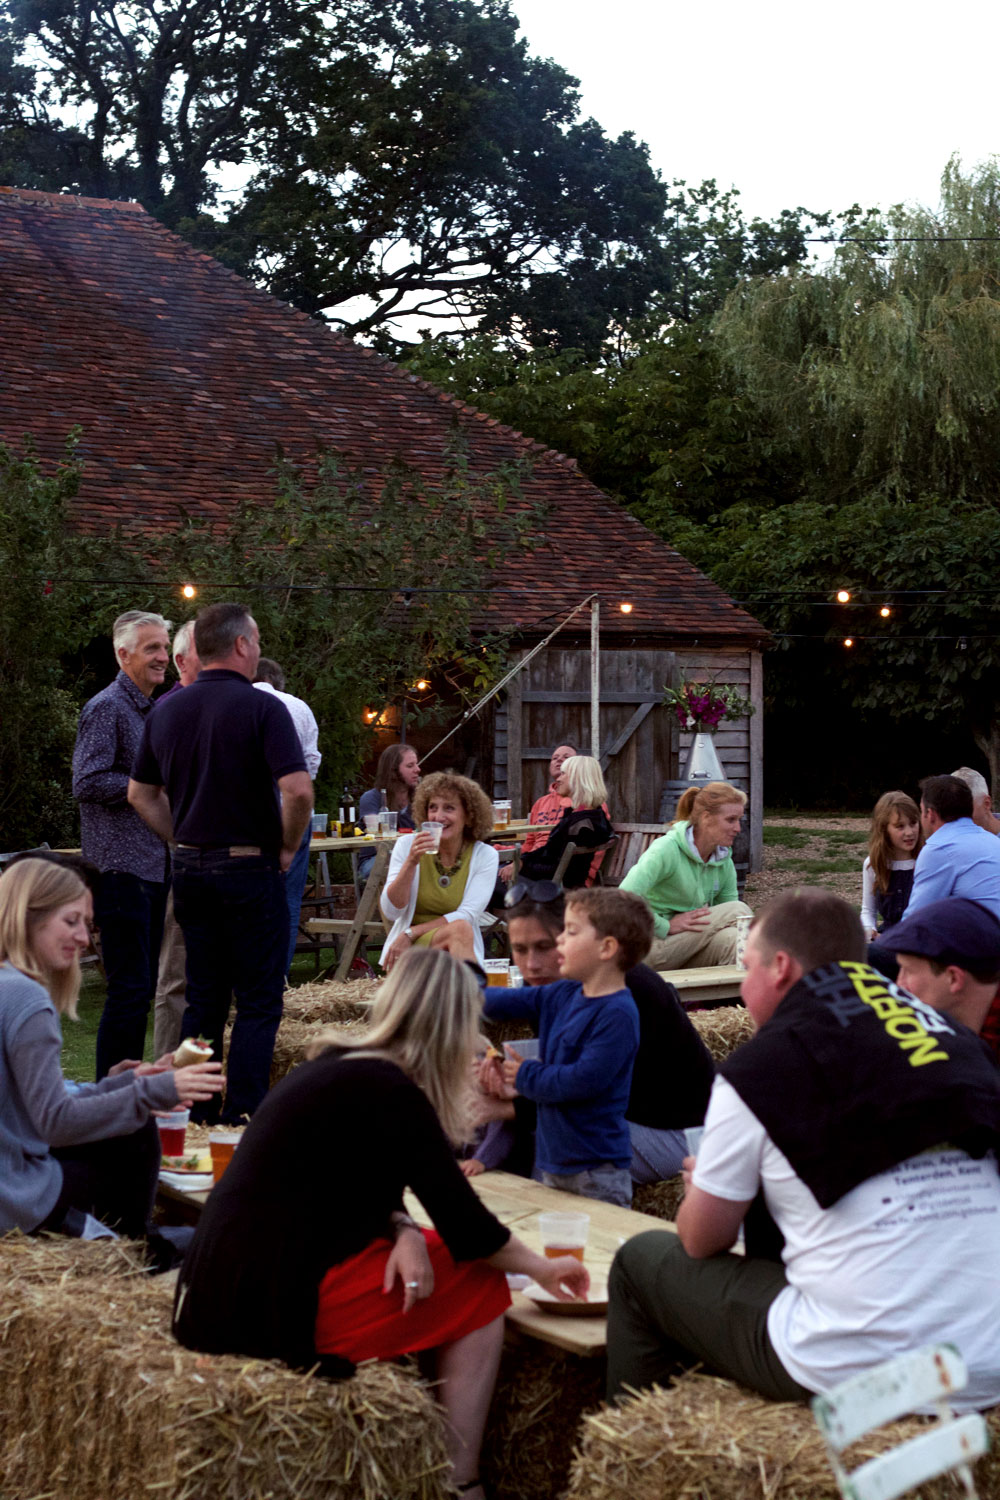 Brick-house farm pop up pub